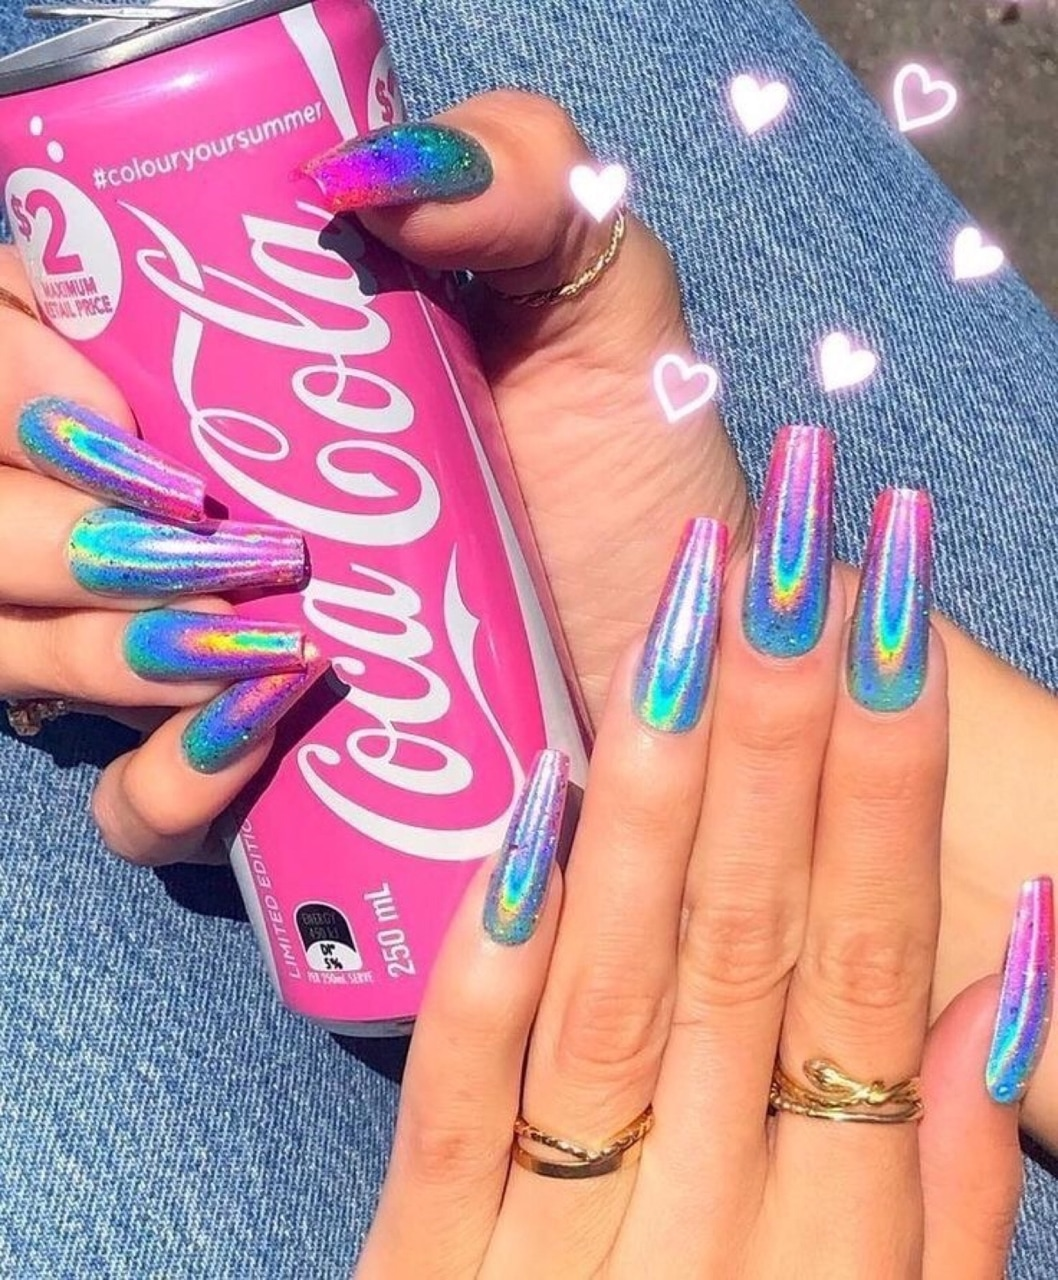 coca cola, pink, women and nails